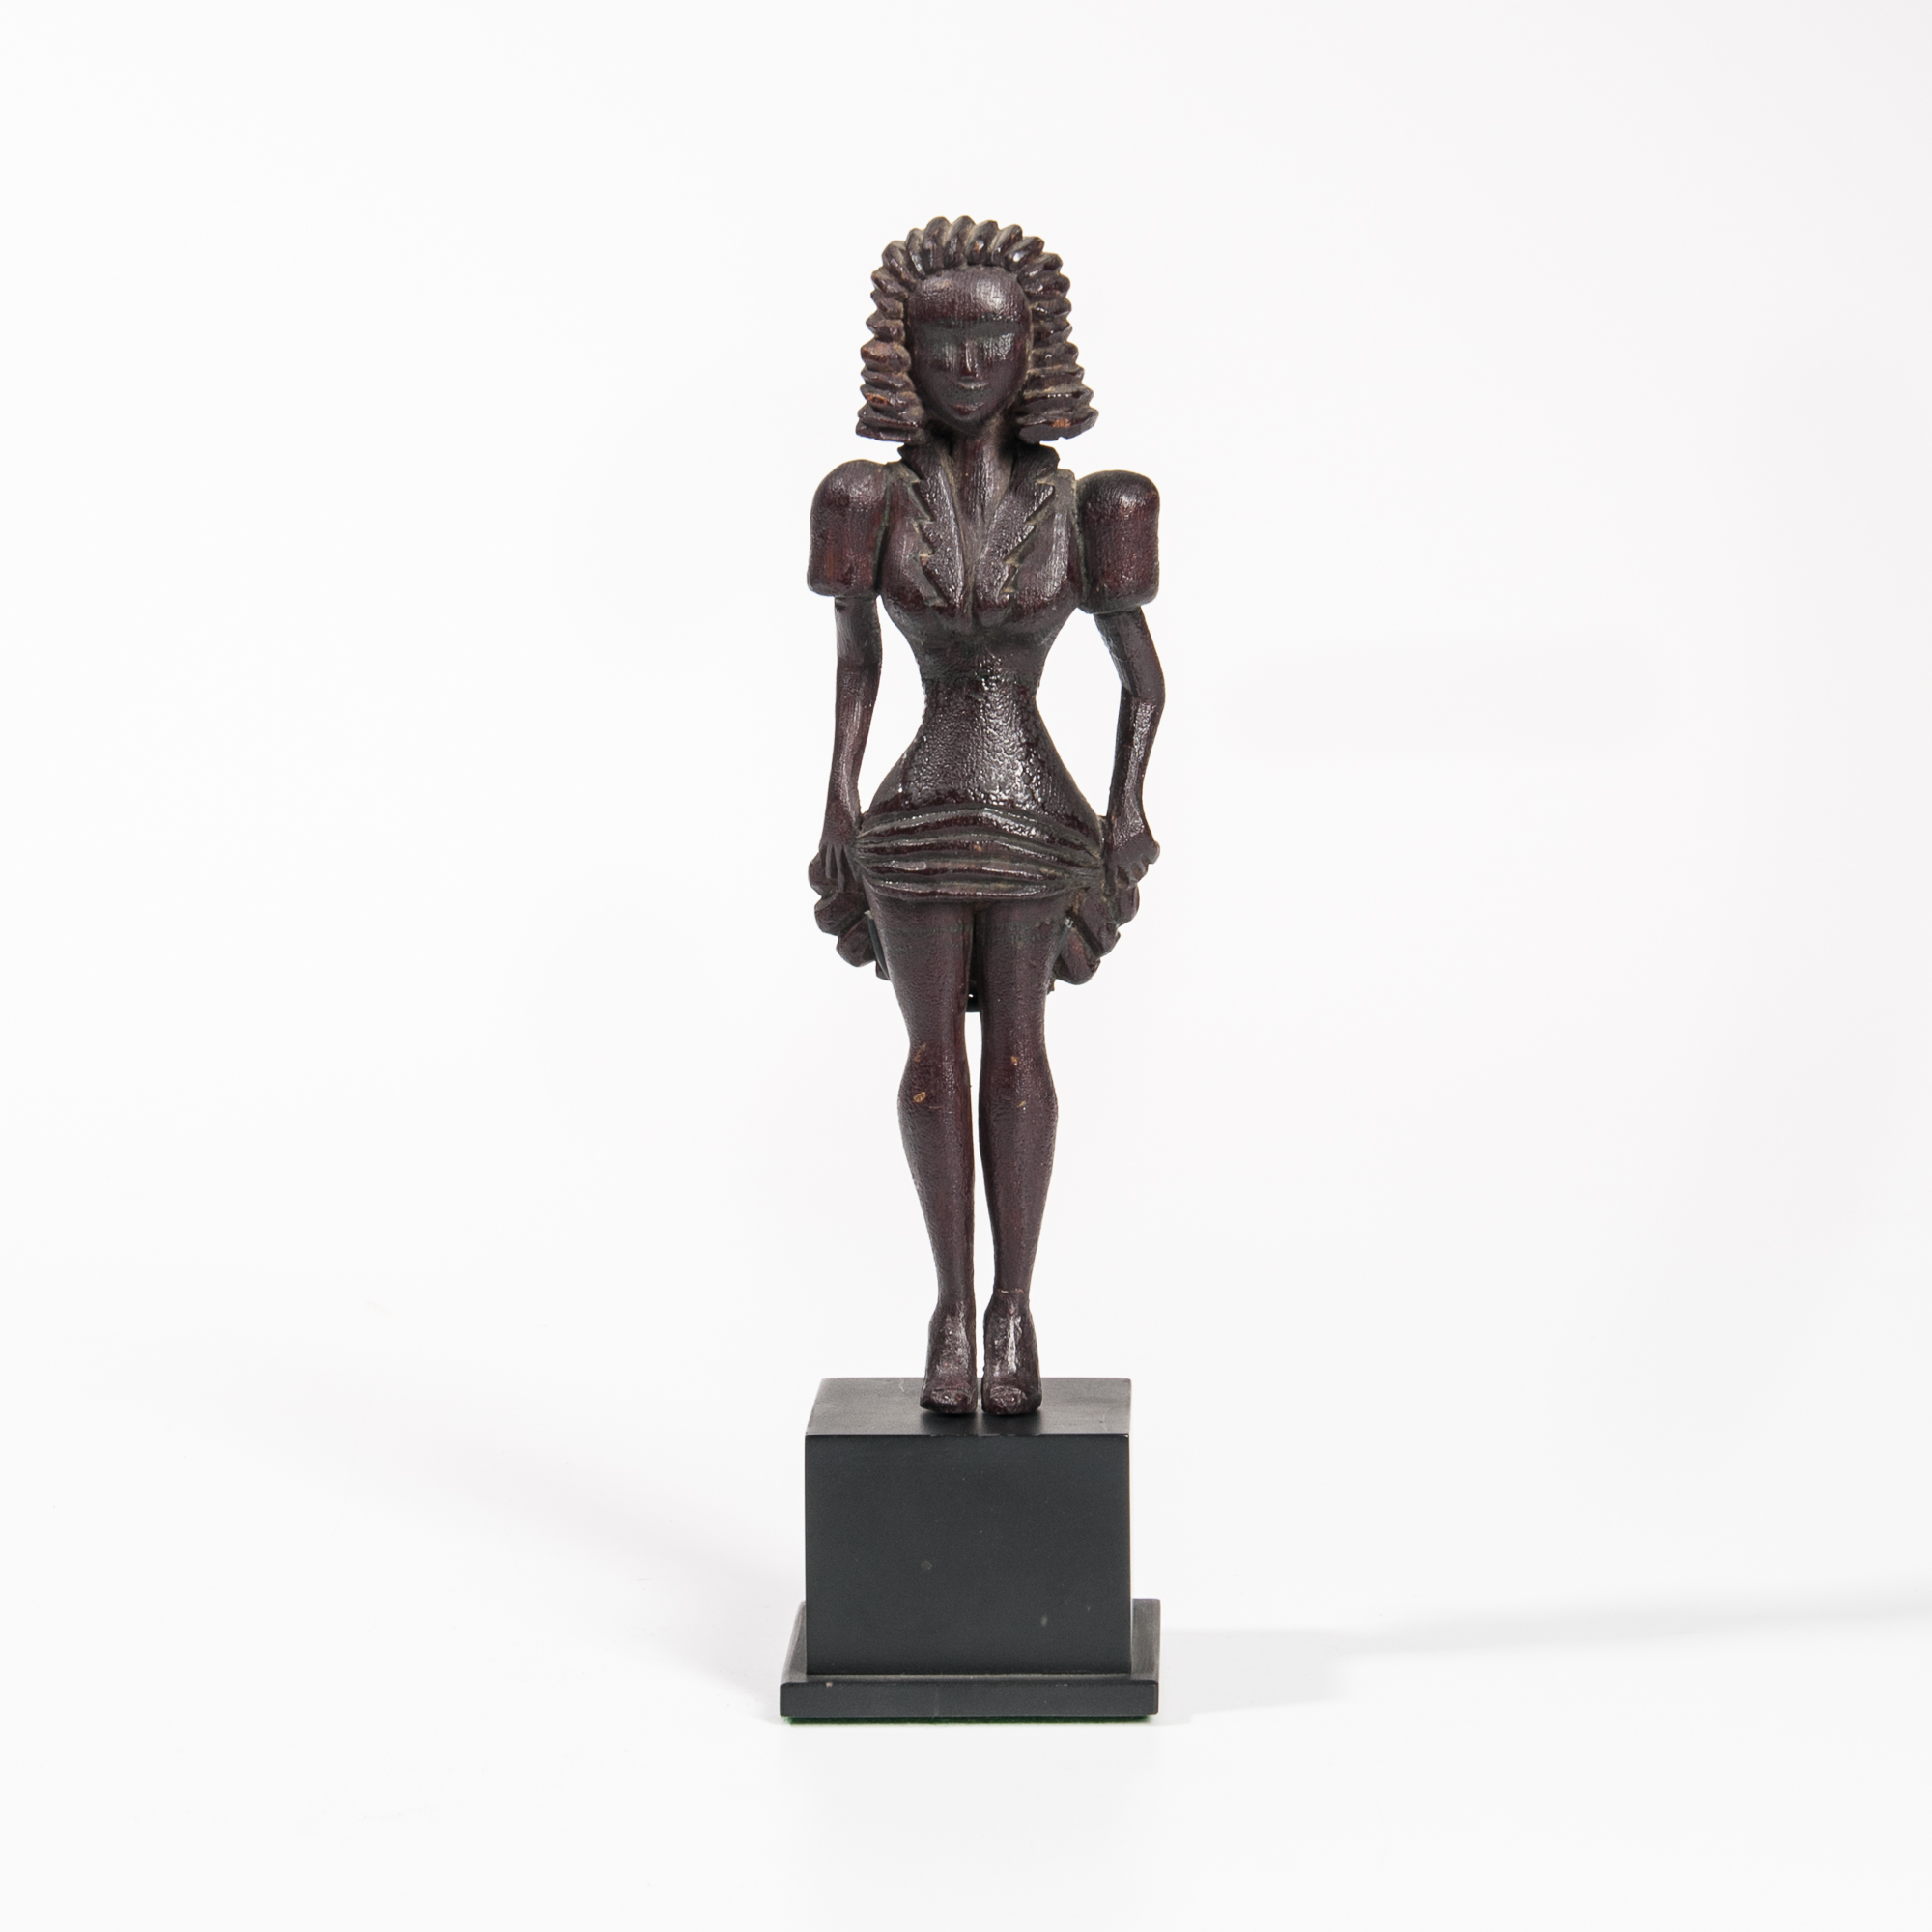 Carved Wood Figure of a Woman Lifting Her Skirt, America, c. 1925-35 (Lot 8, Estimate: $3,000-5,000)